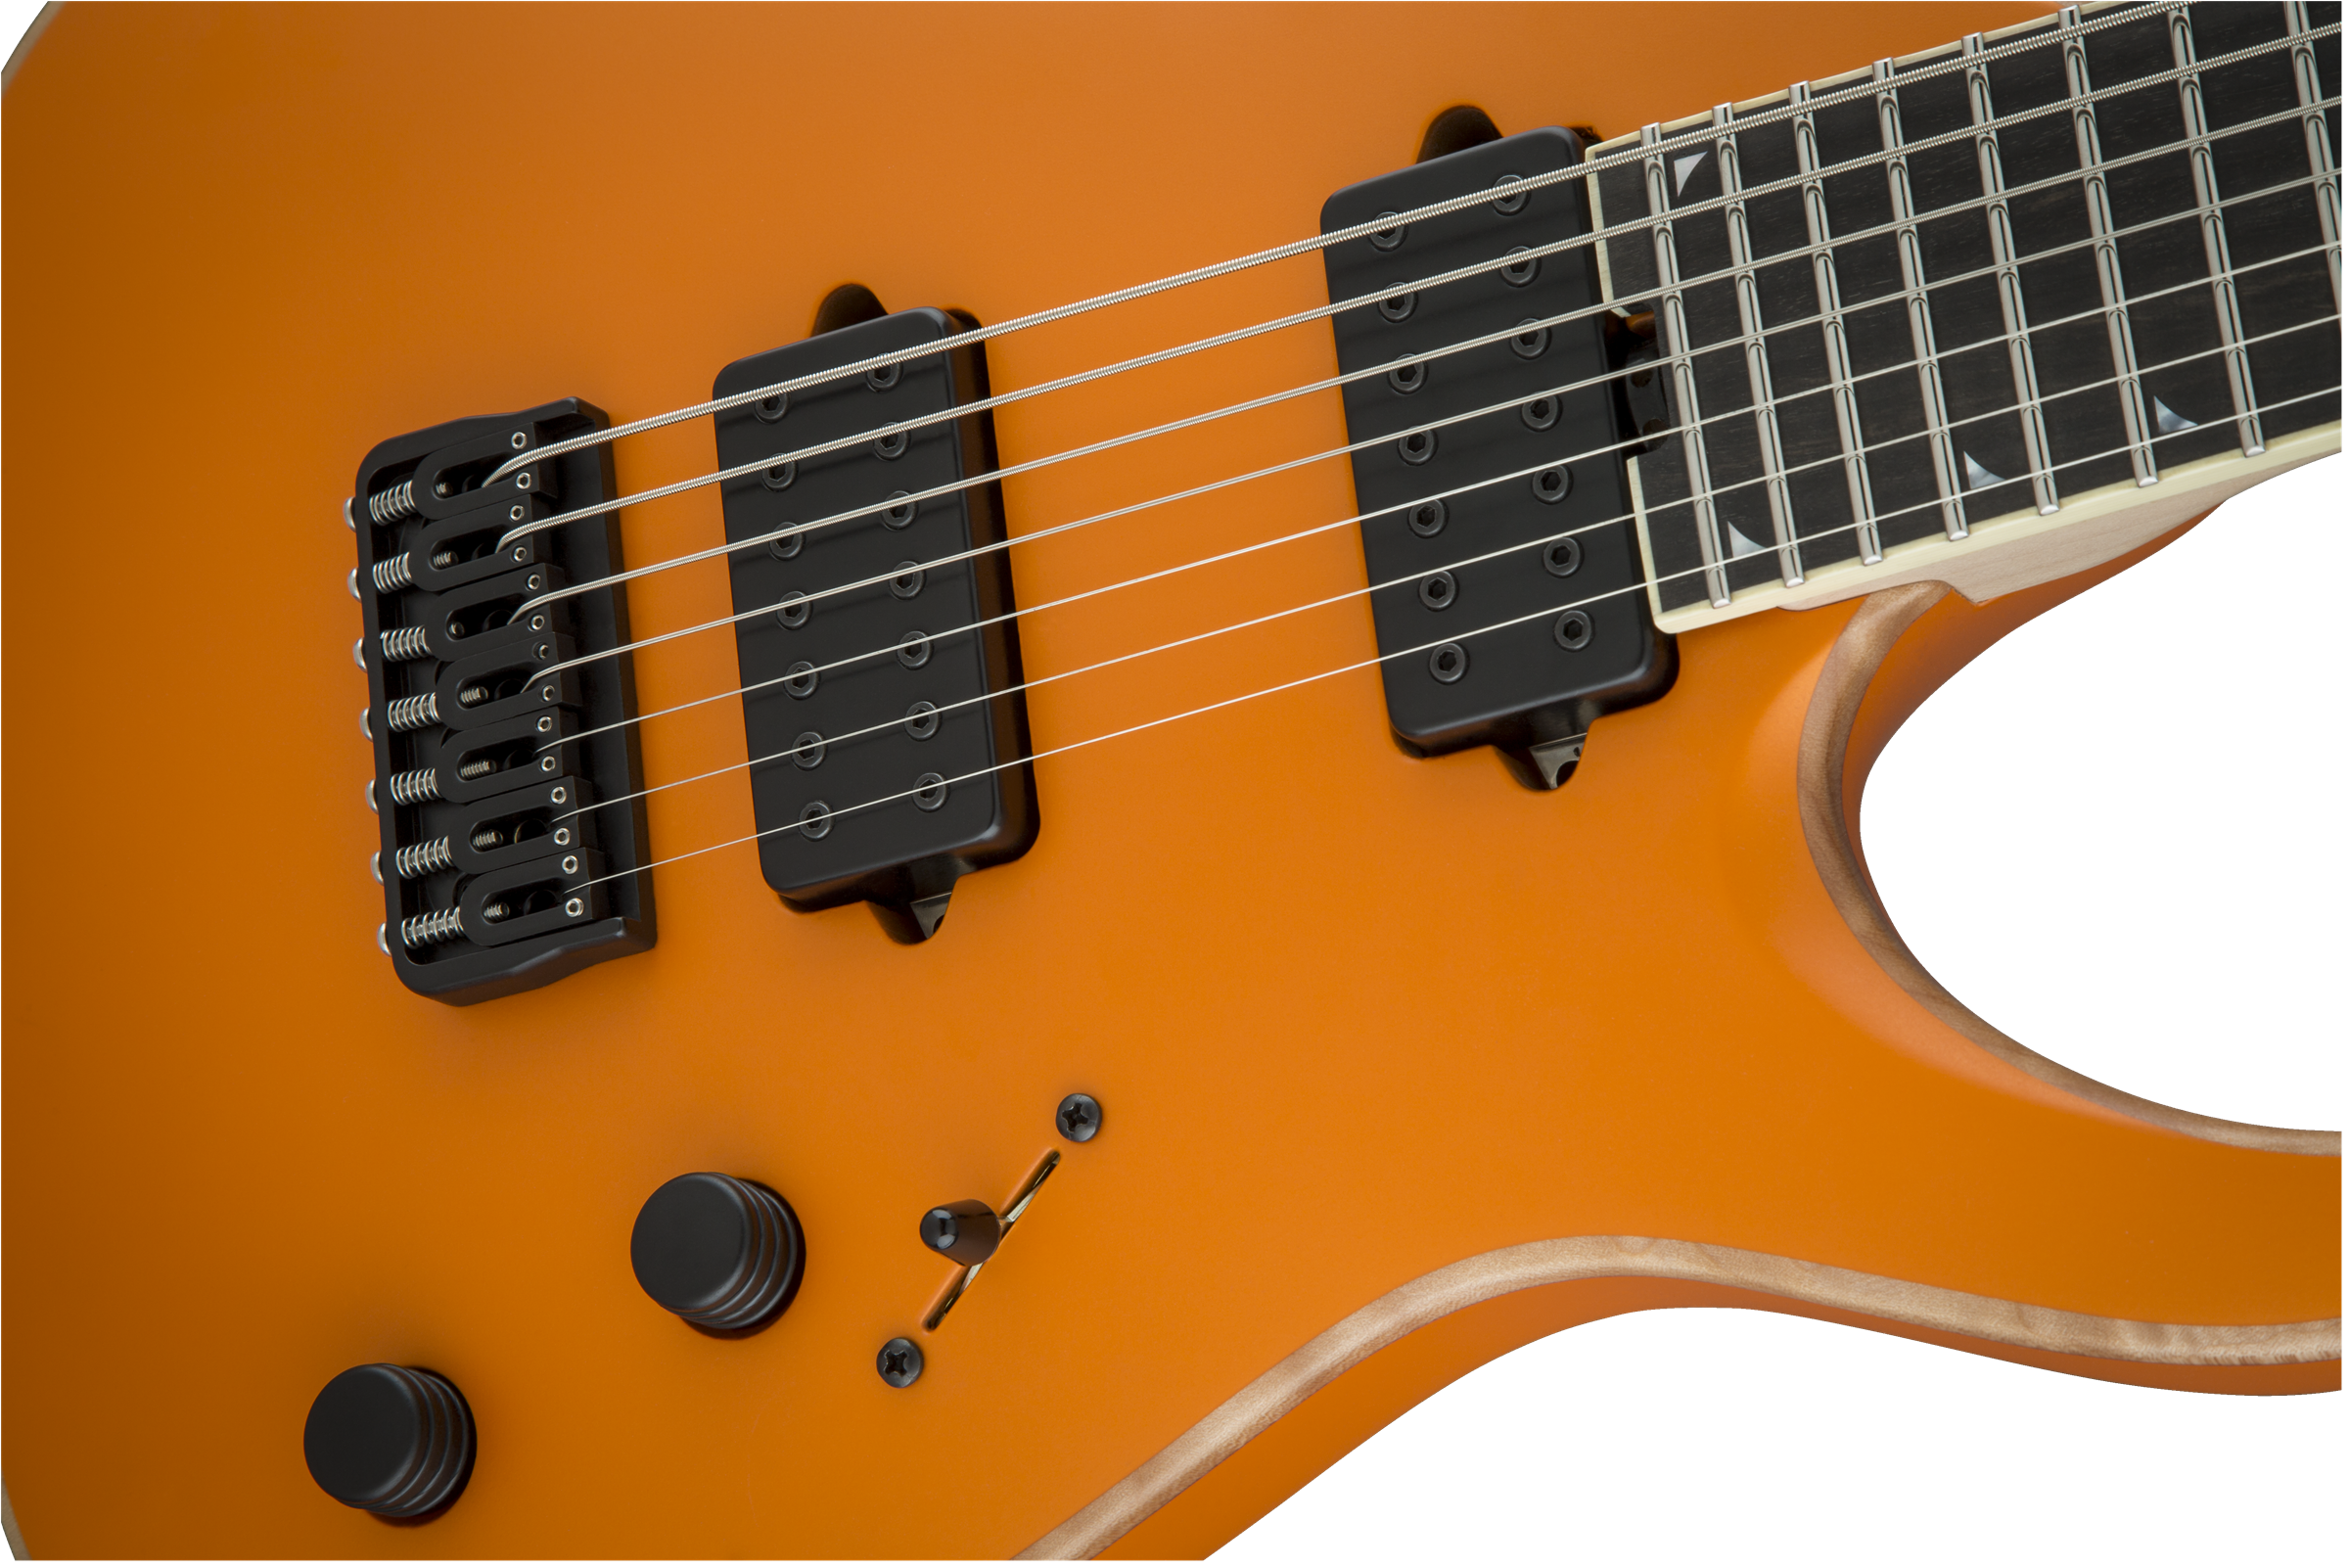 Juggernaut Usa Signature Limited Edition Misha Mansoor Jackson Pickup Wiring Is Acclaimed For His Masterful Guitar Work In Fashioning The Progressive Metal Of Periphery And Proud To Have Collaborated So